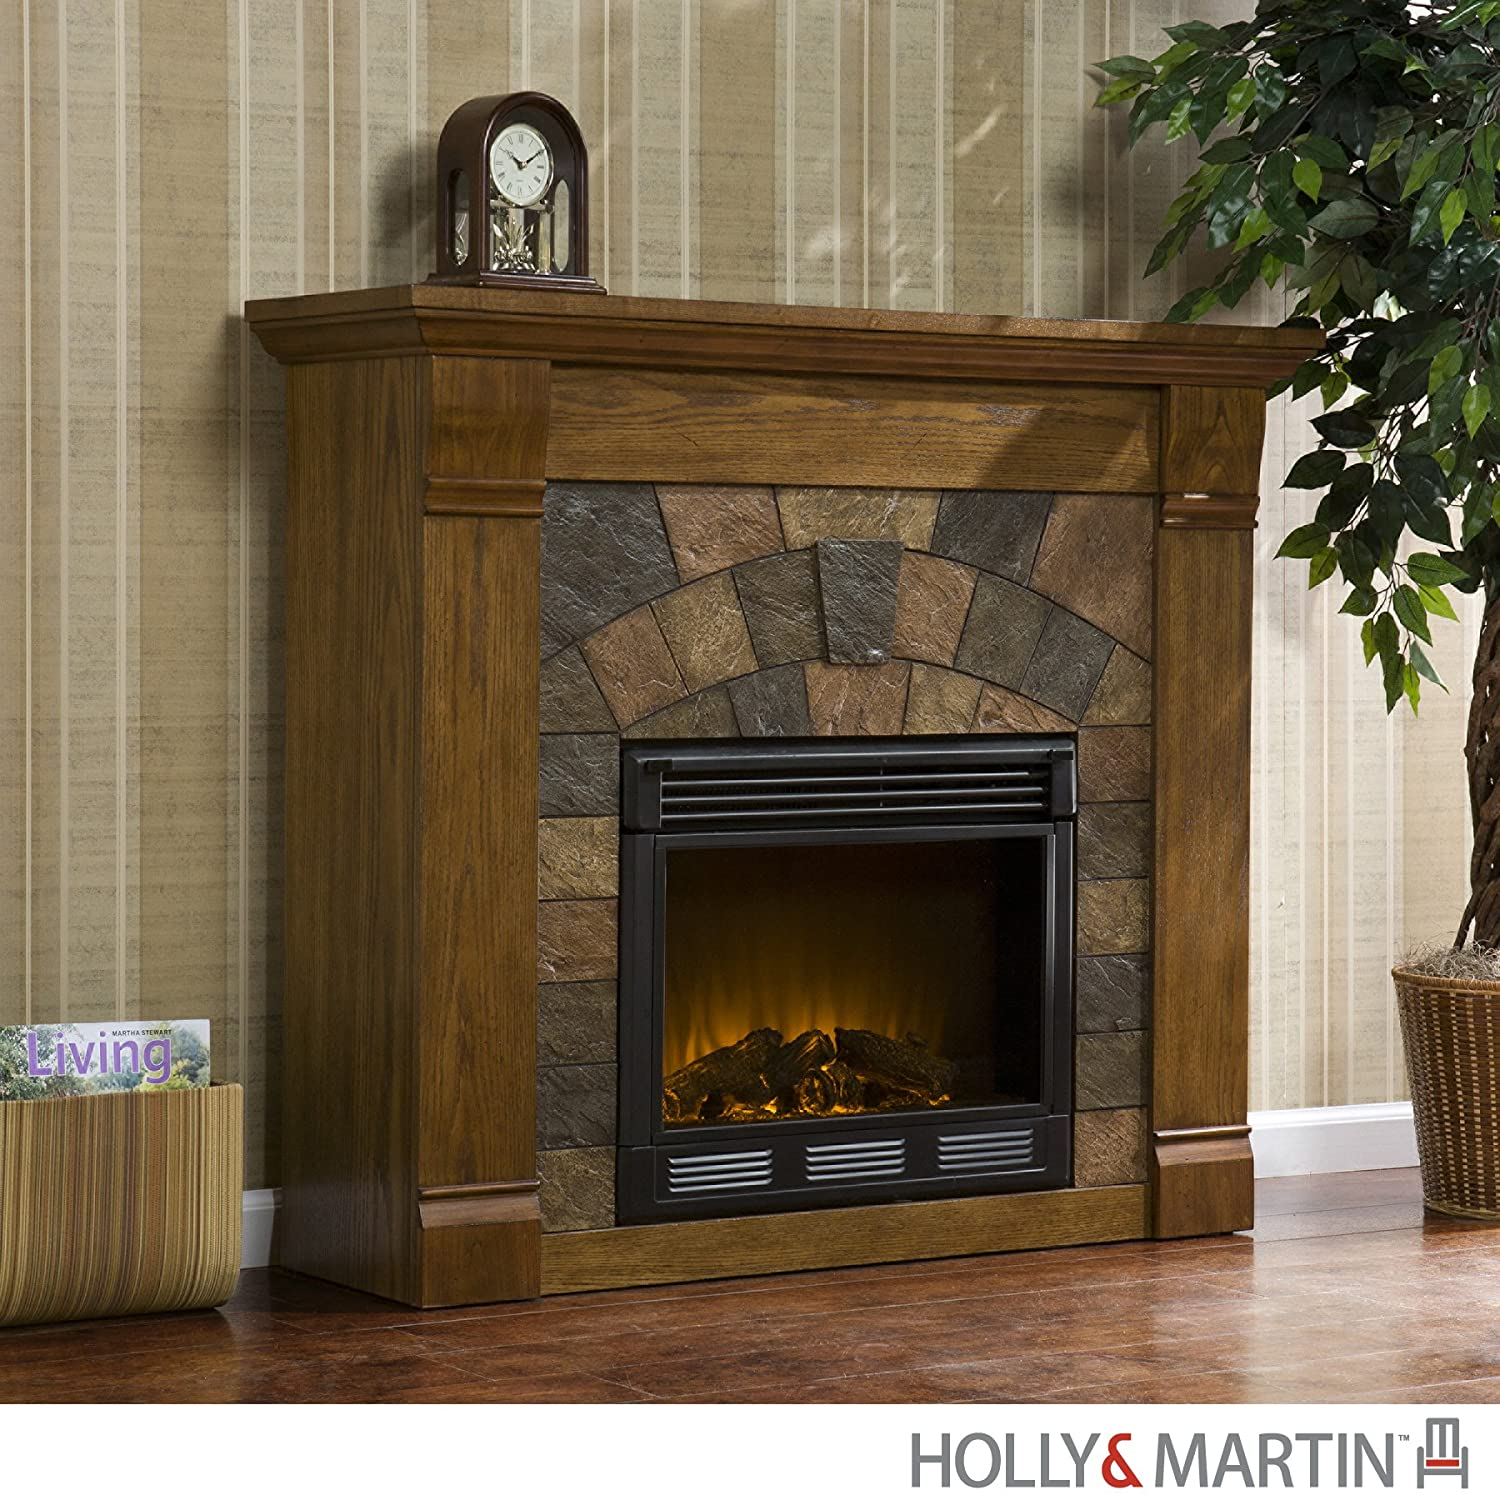 Fireplace tv stand electric fireplaces in arizona electric fireplace - Holly Martin Underwood Electric Fireplace Oak